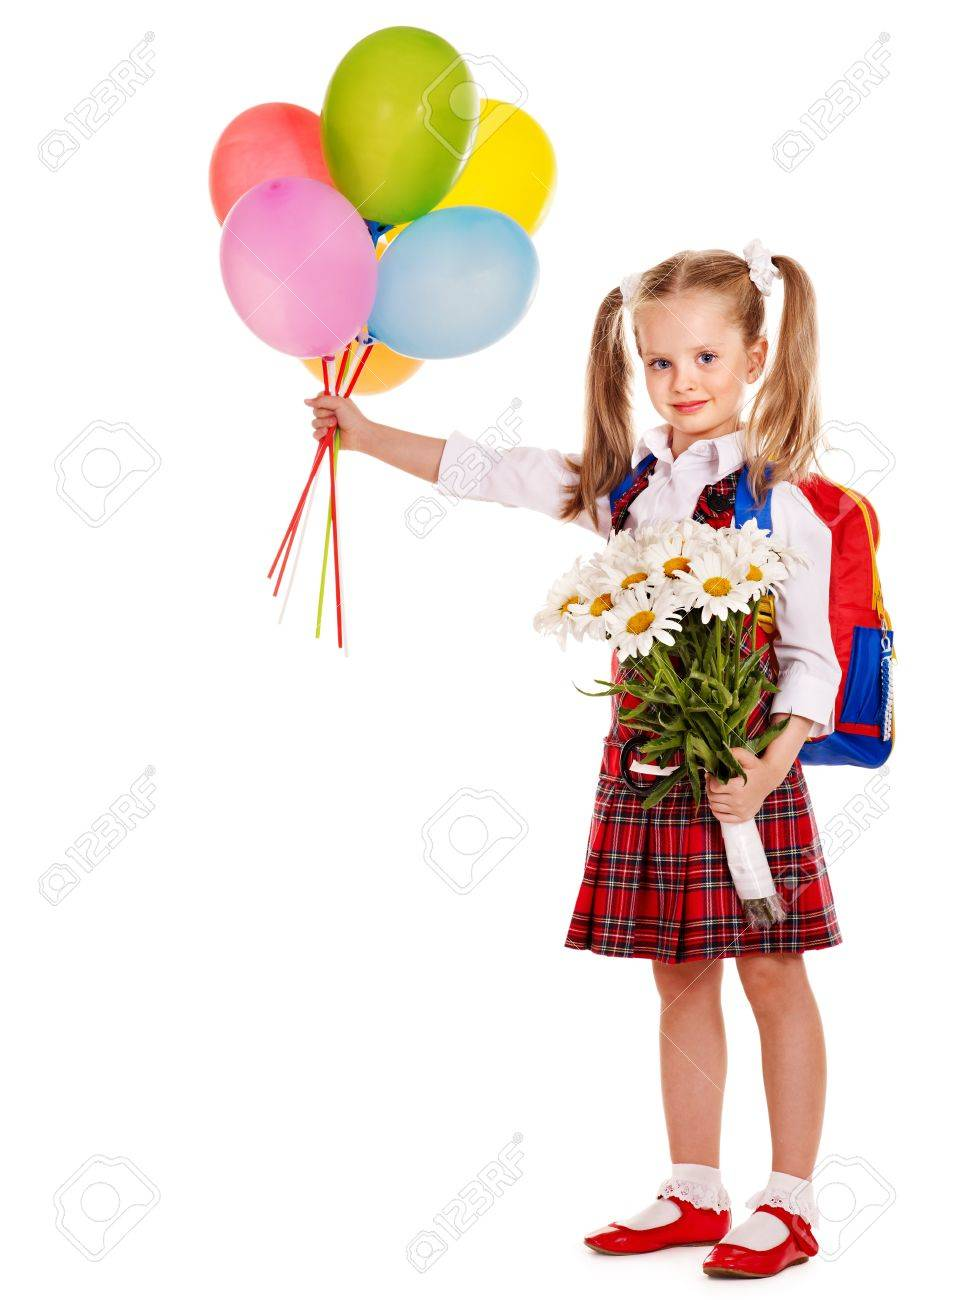 Child with backpack holding balloon. Isolated. Stock Photo - 14741754 9fcff3f5f1d9a